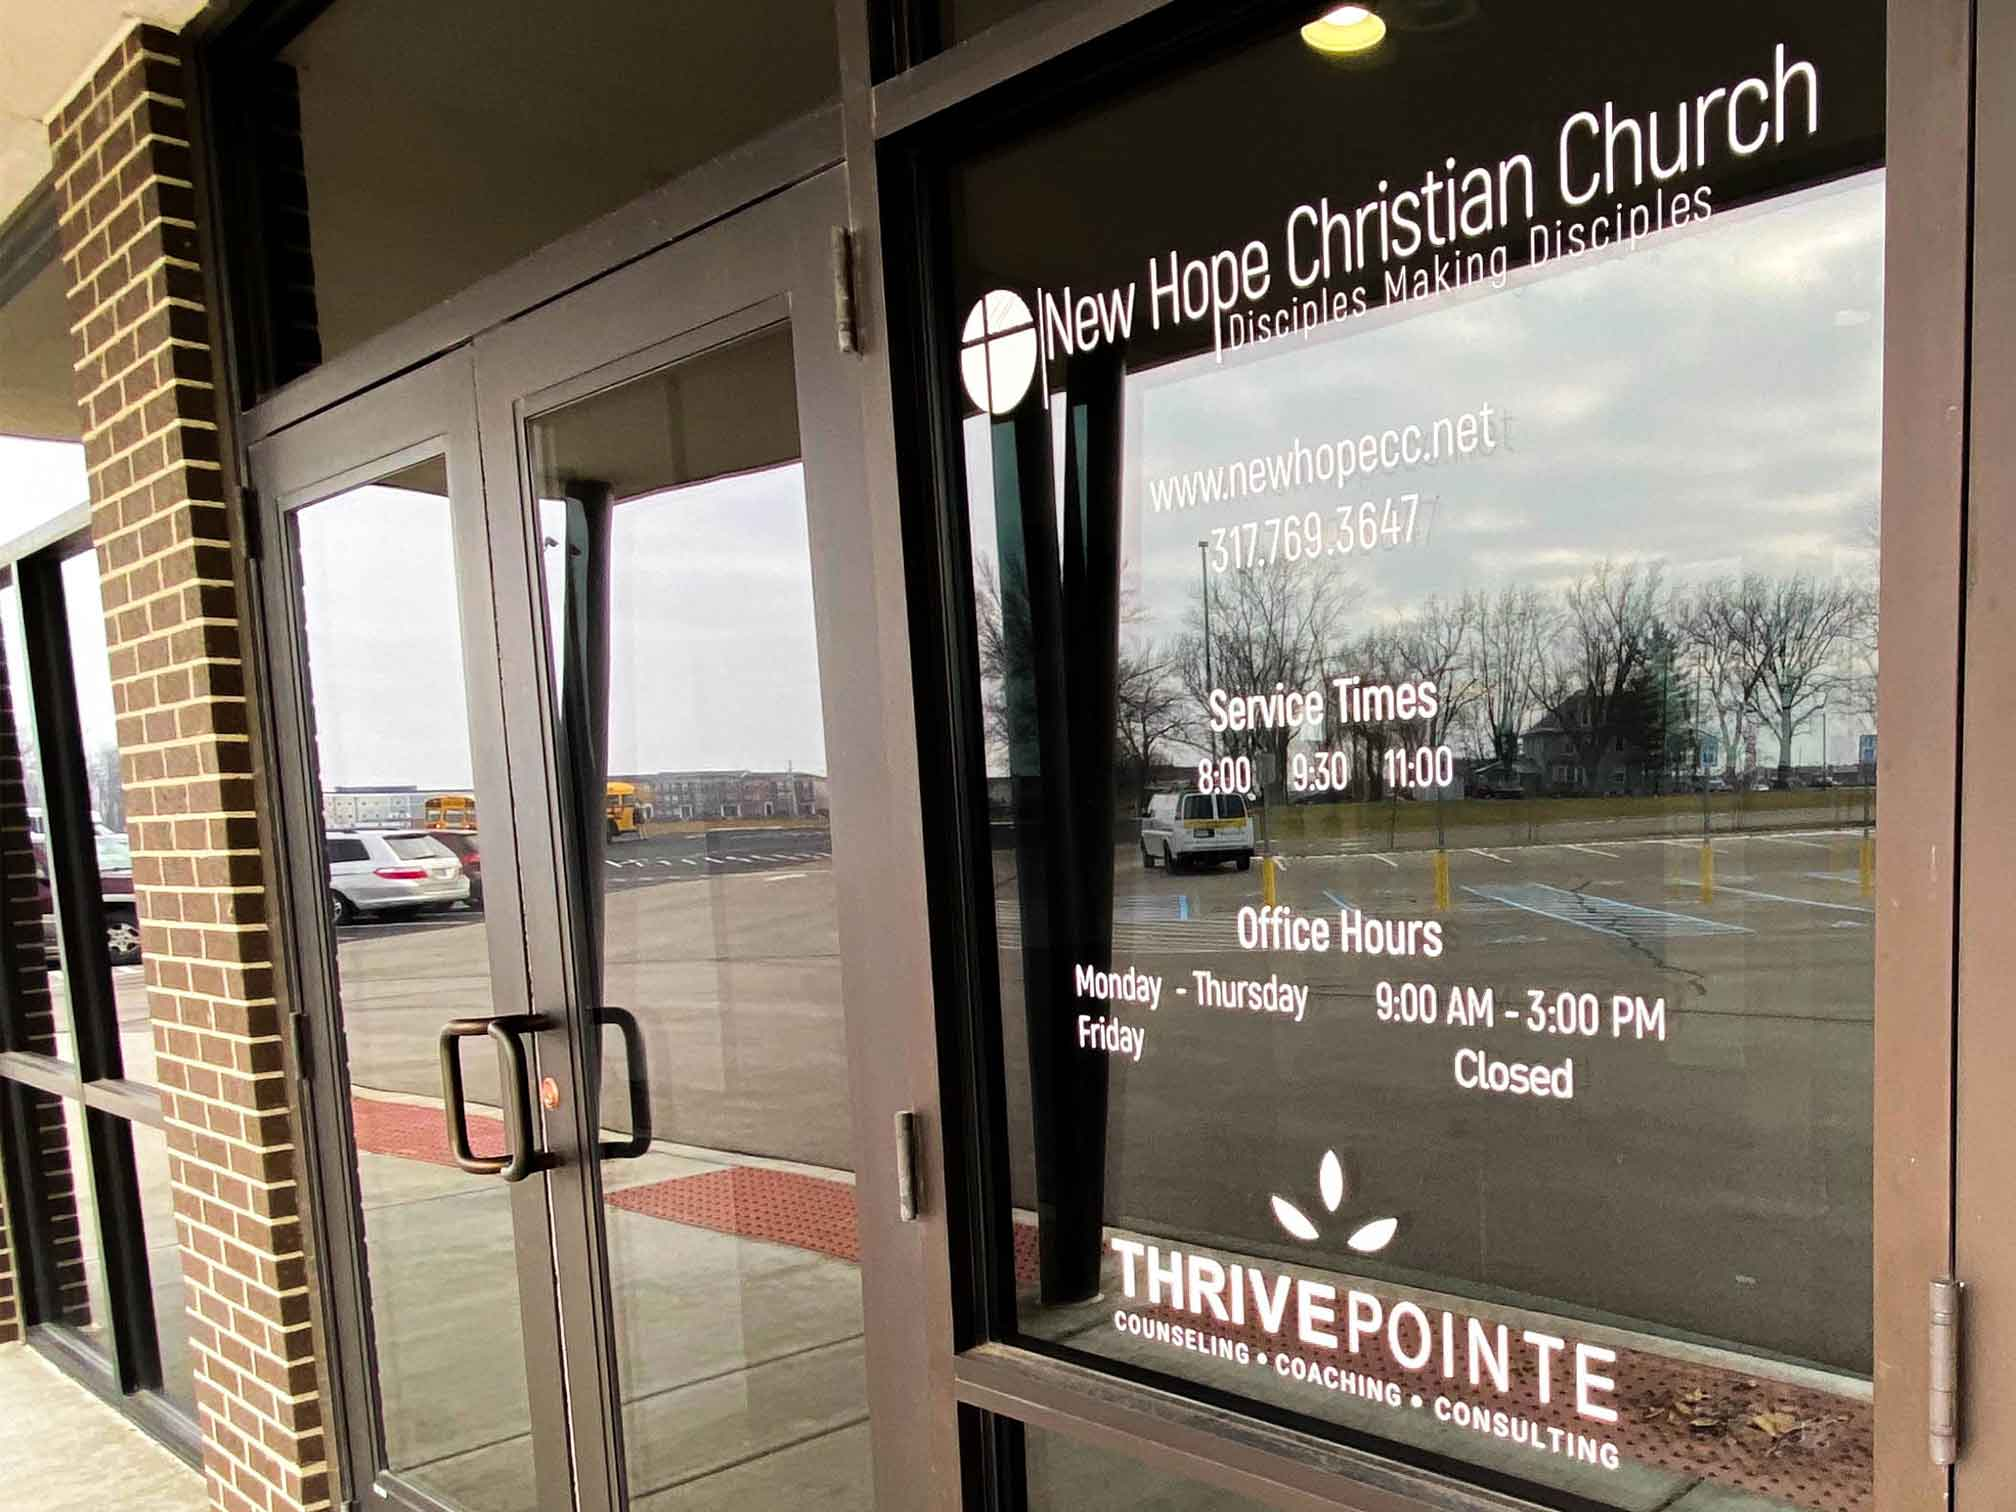 Front door of New Hope Christian Church for the offices of counseling with a ThrivePointe therapist at New Hope Christian Church. ThrivePointe Whitestown, IN 46075